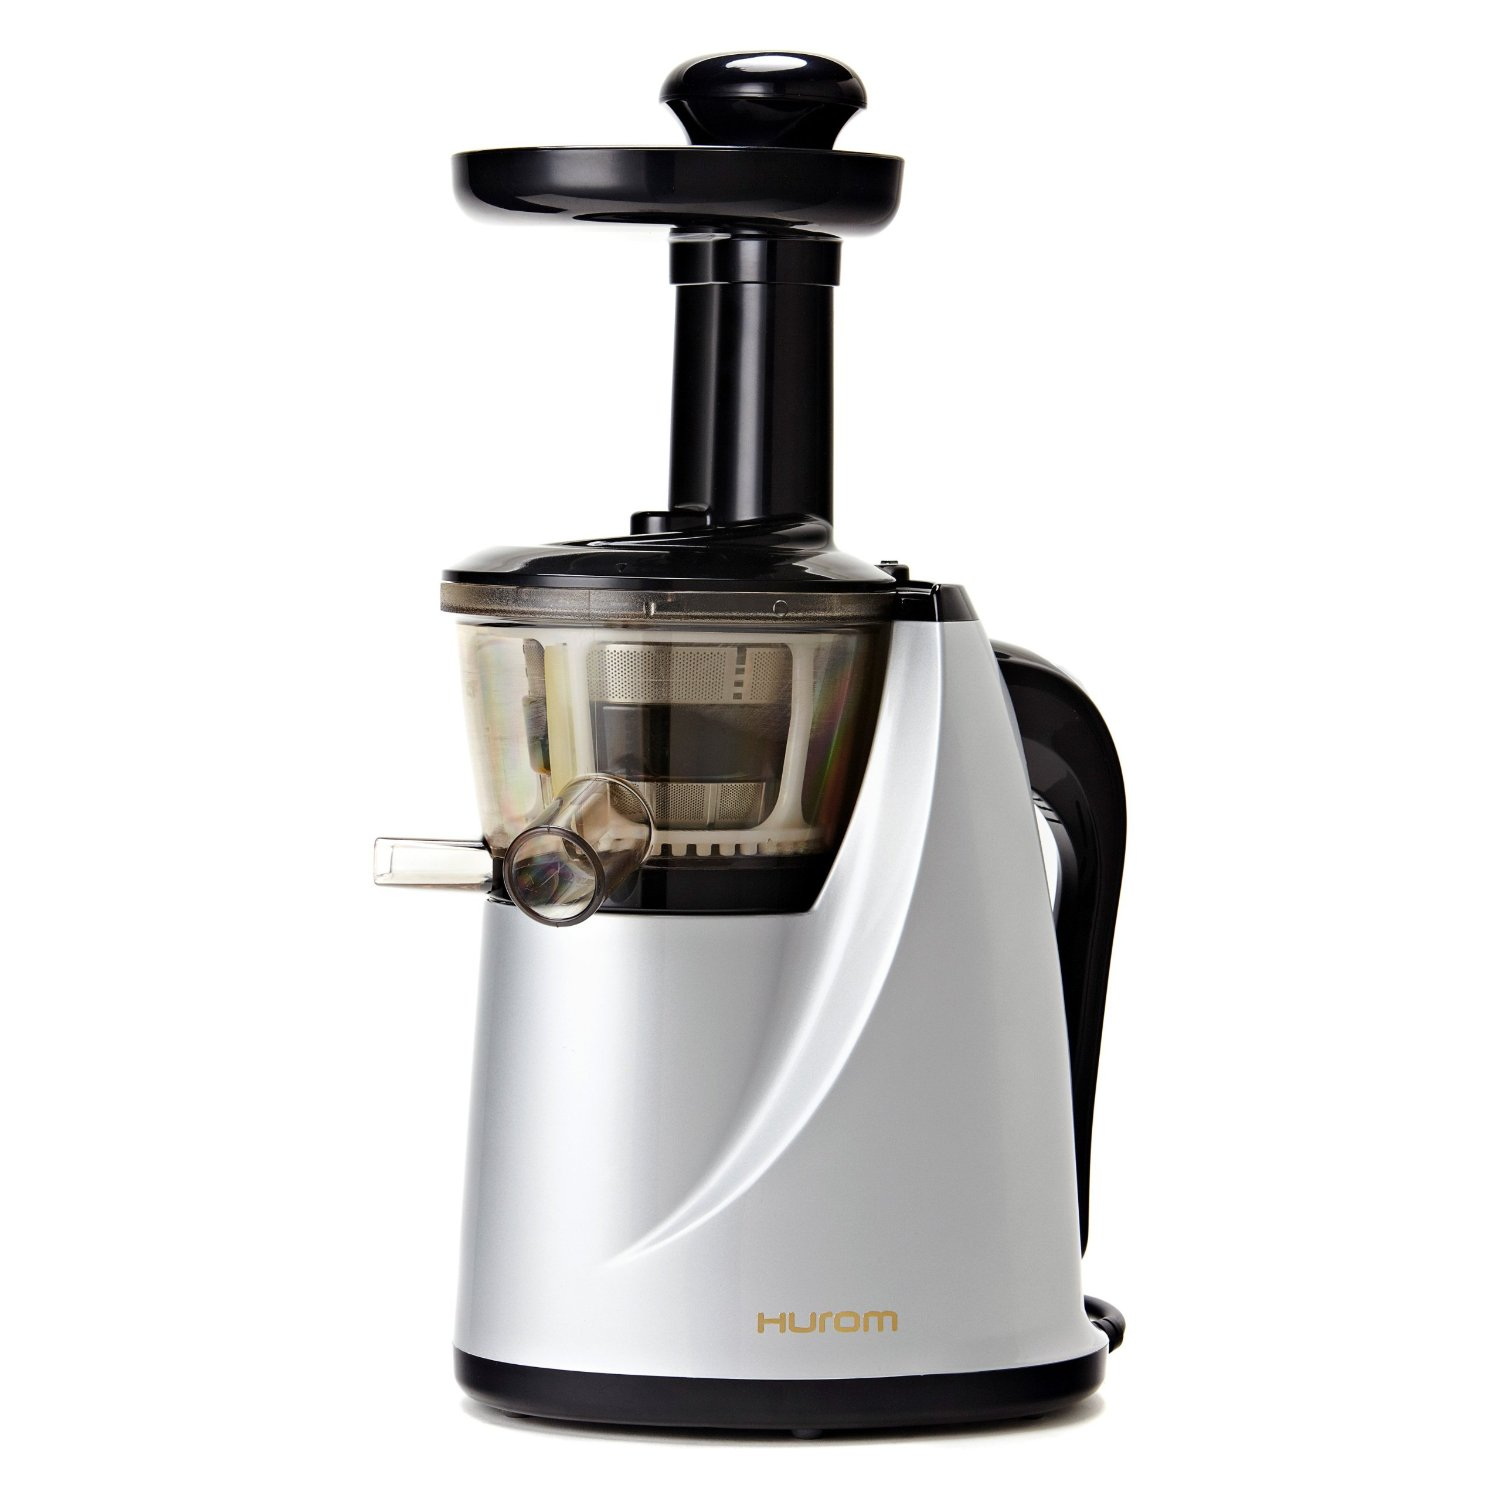 Hurom Juicer Slow Juicer : Hurom HU-100 Masticating Slow Juicer Review - Best Cold Press Juicers